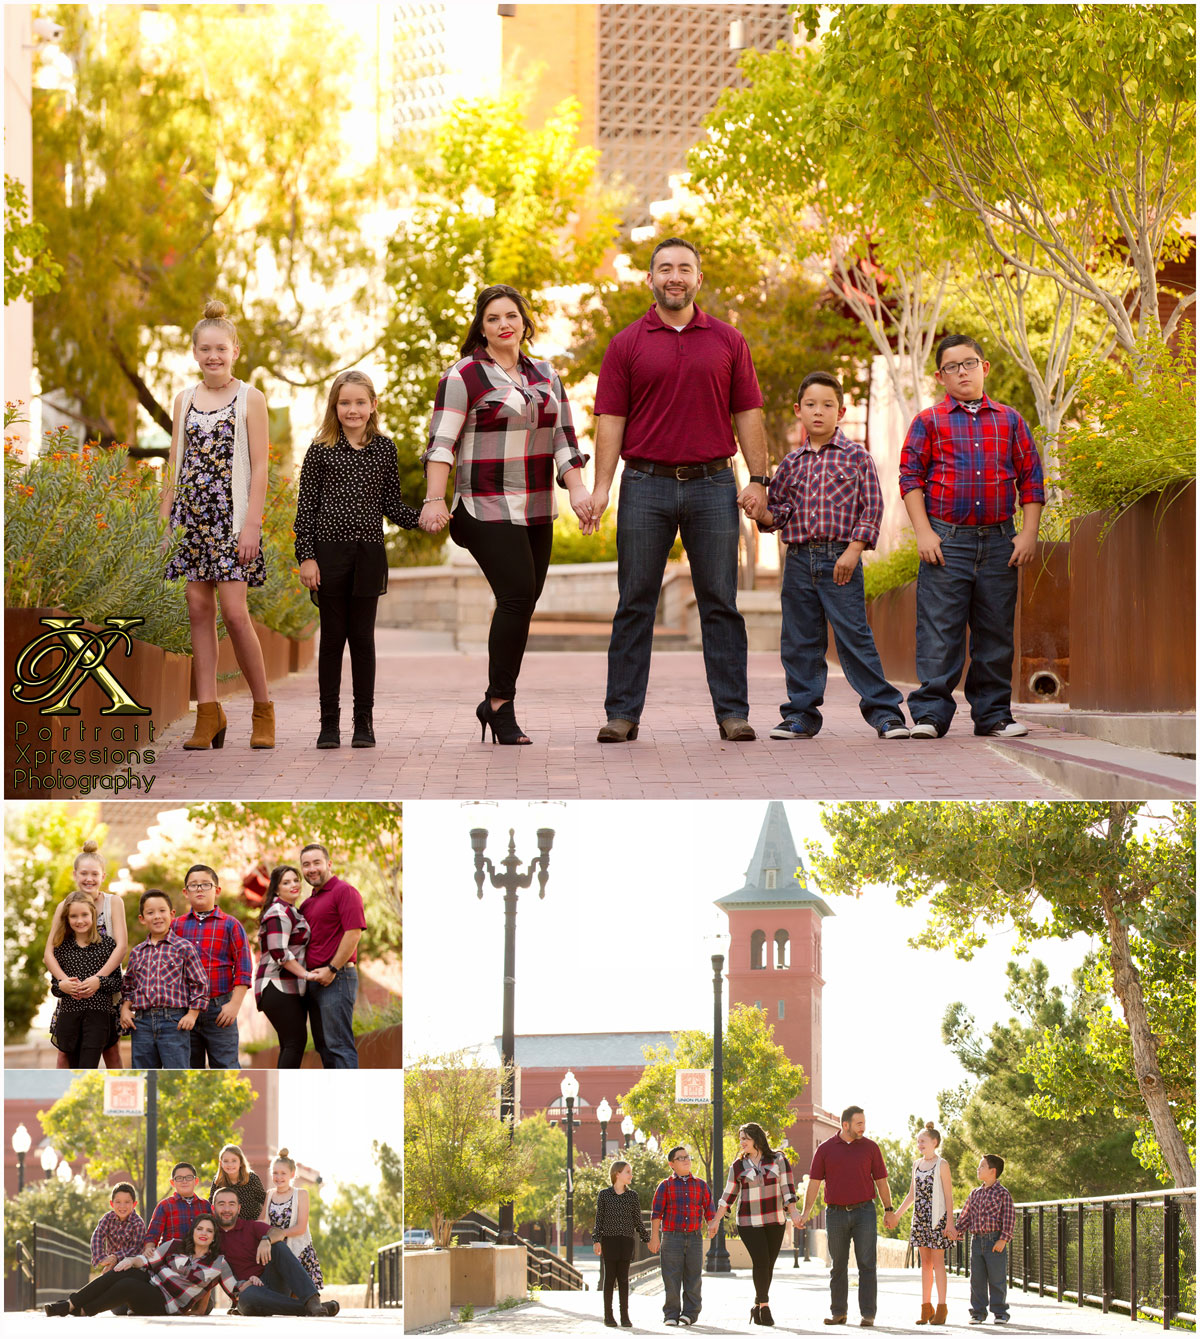 El Paso family portrait photography